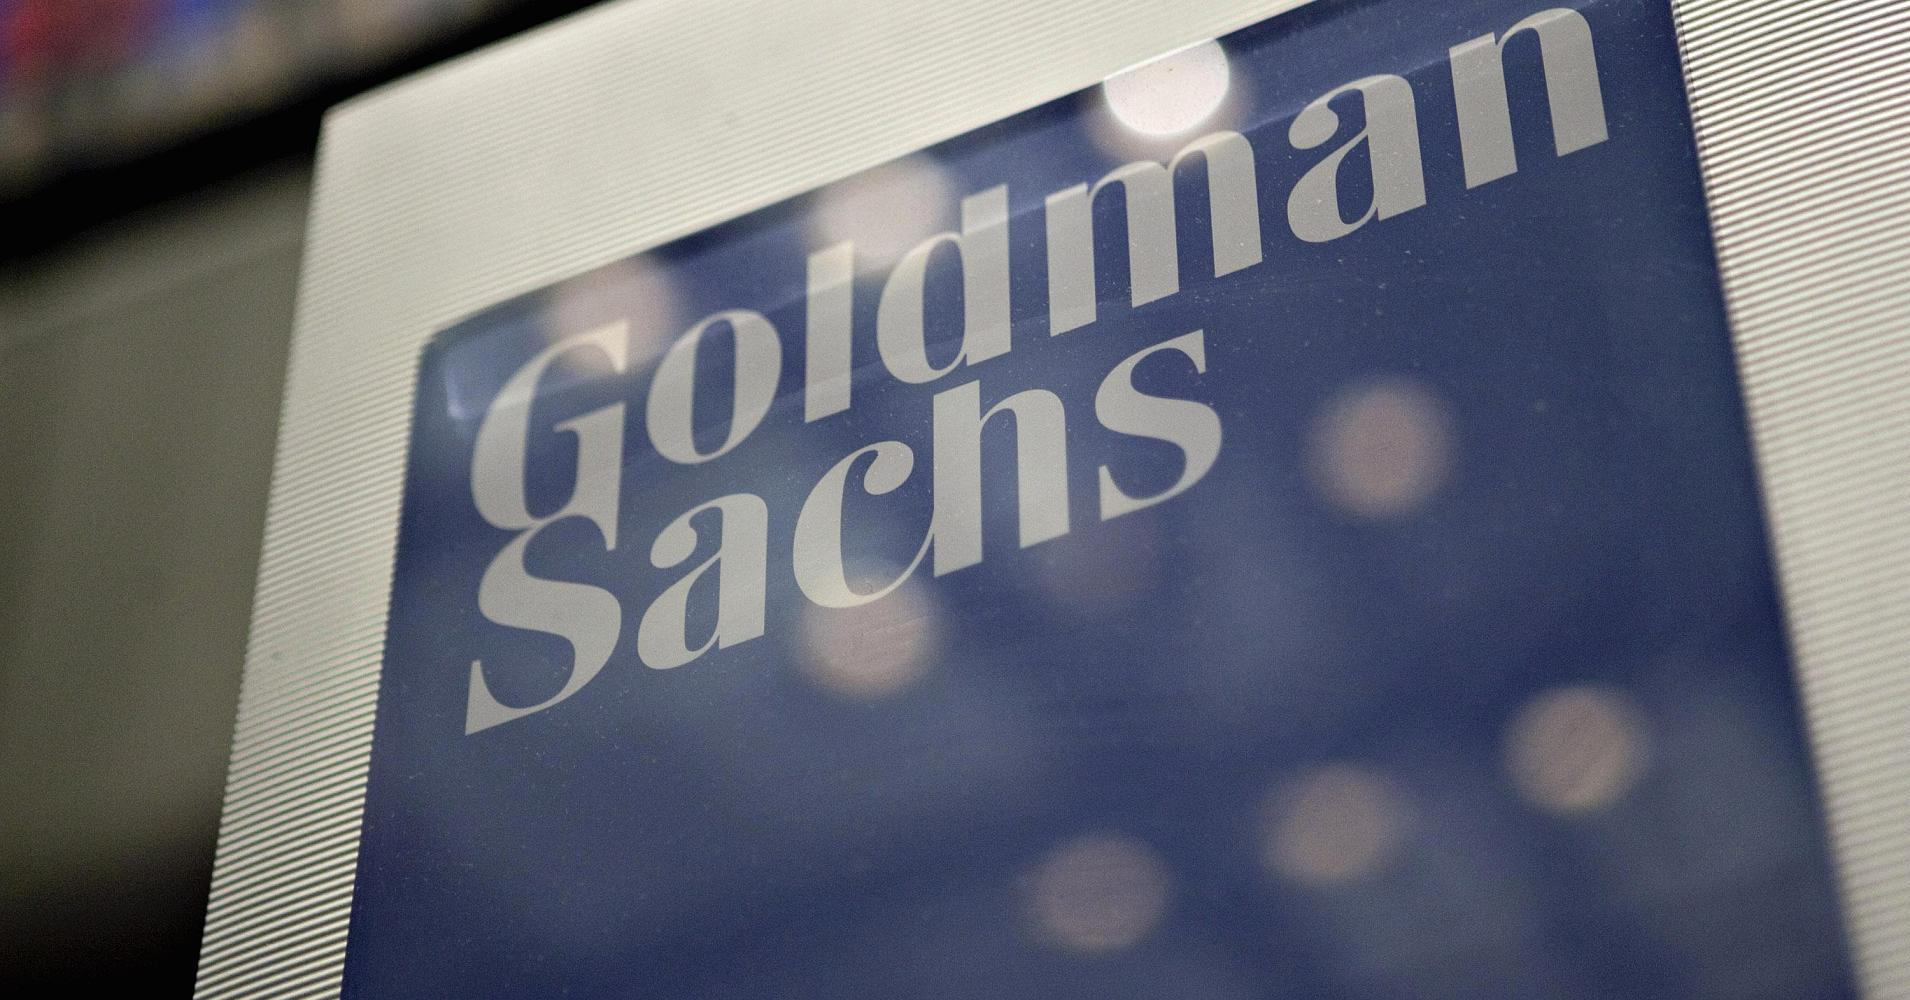 Goldman Sachs sees oil rally fading